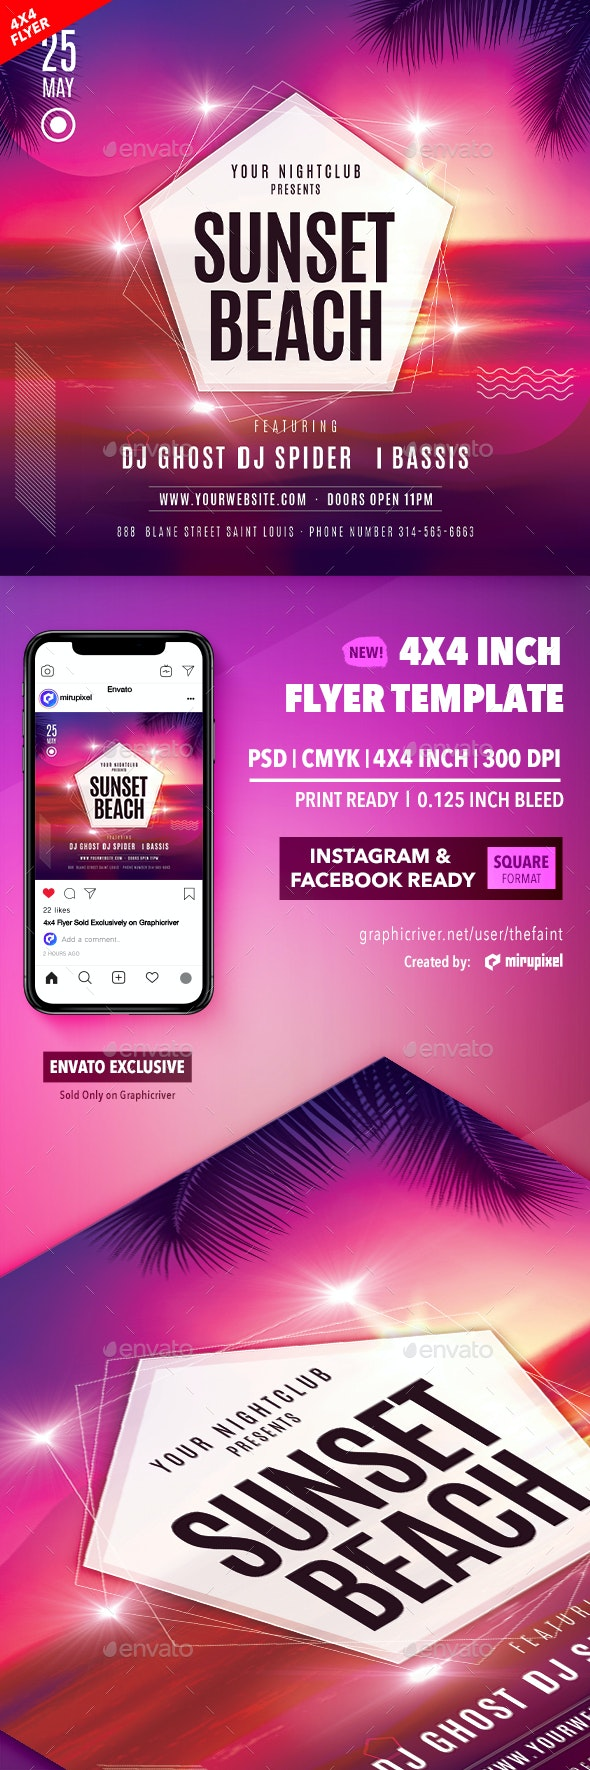 Sunset Beach 4x4 Inch Flyer Template - Clubs & Parties Events